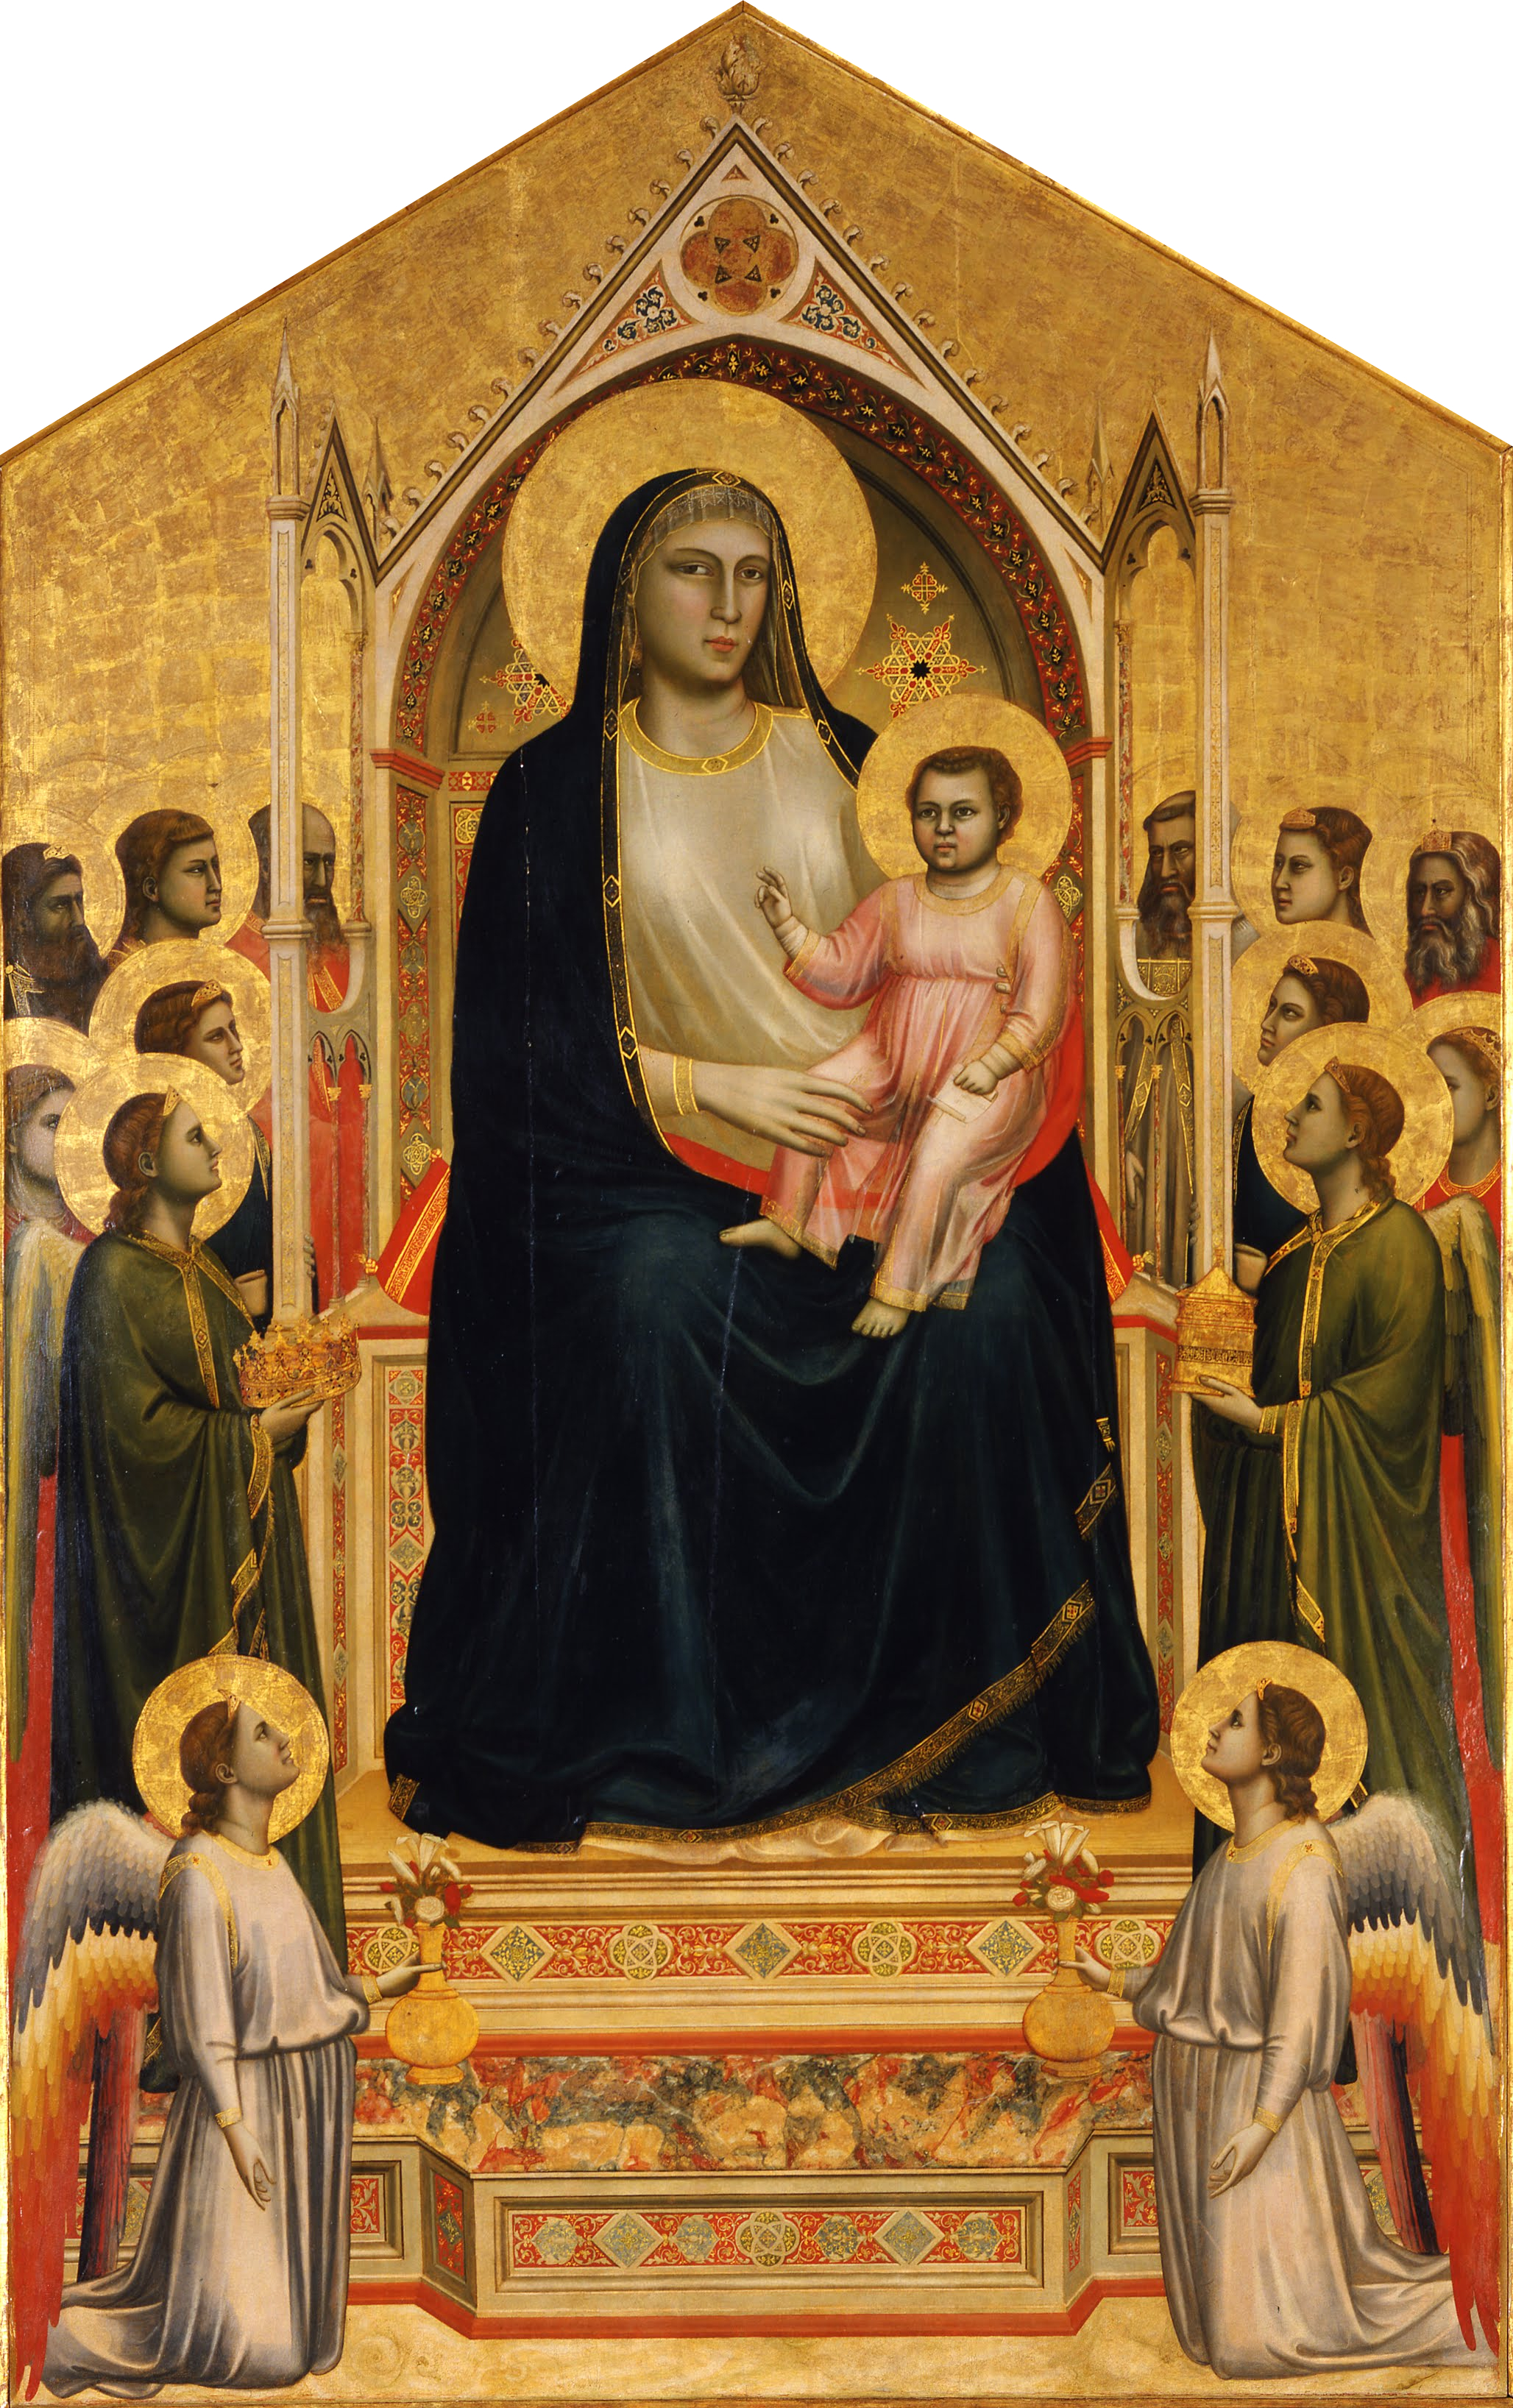 File:Giotto, 1267 Around-1337 - Maestà - Google Art Project.jpg